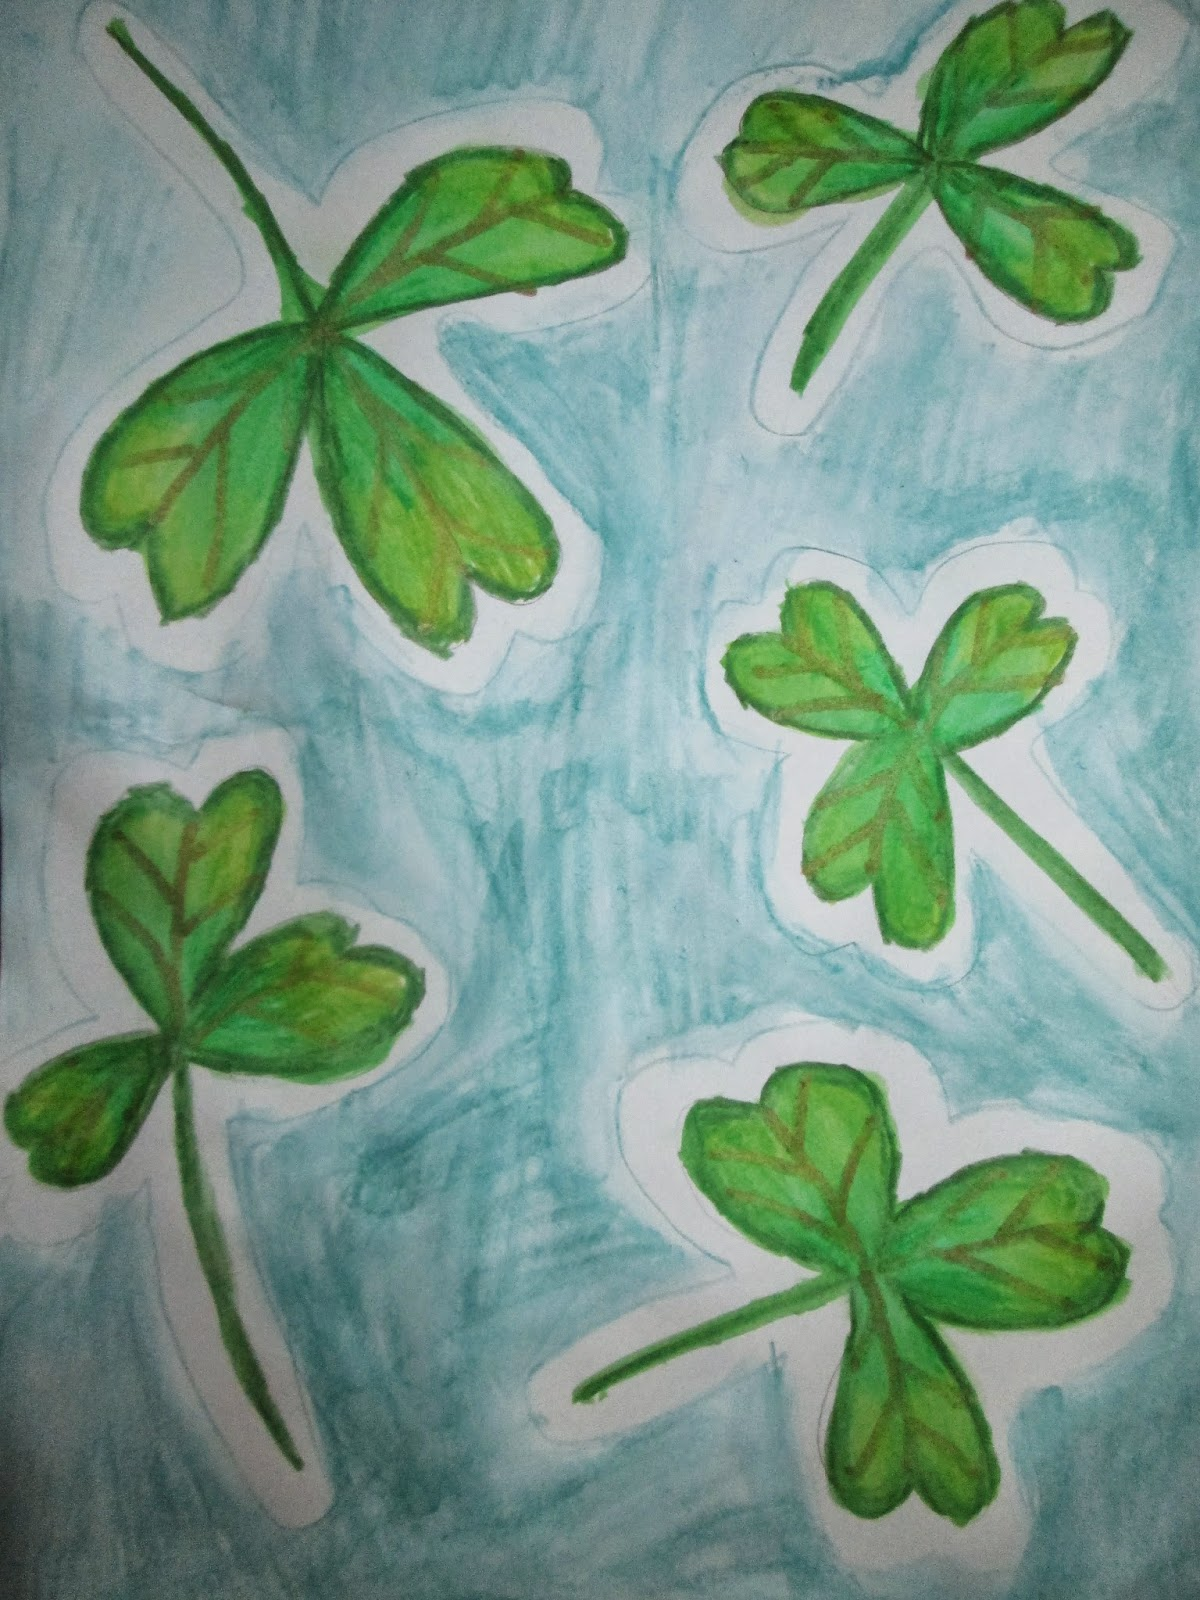 A Taste of Europe - St Patricks Day @ kympossibleblog.blogspot.com